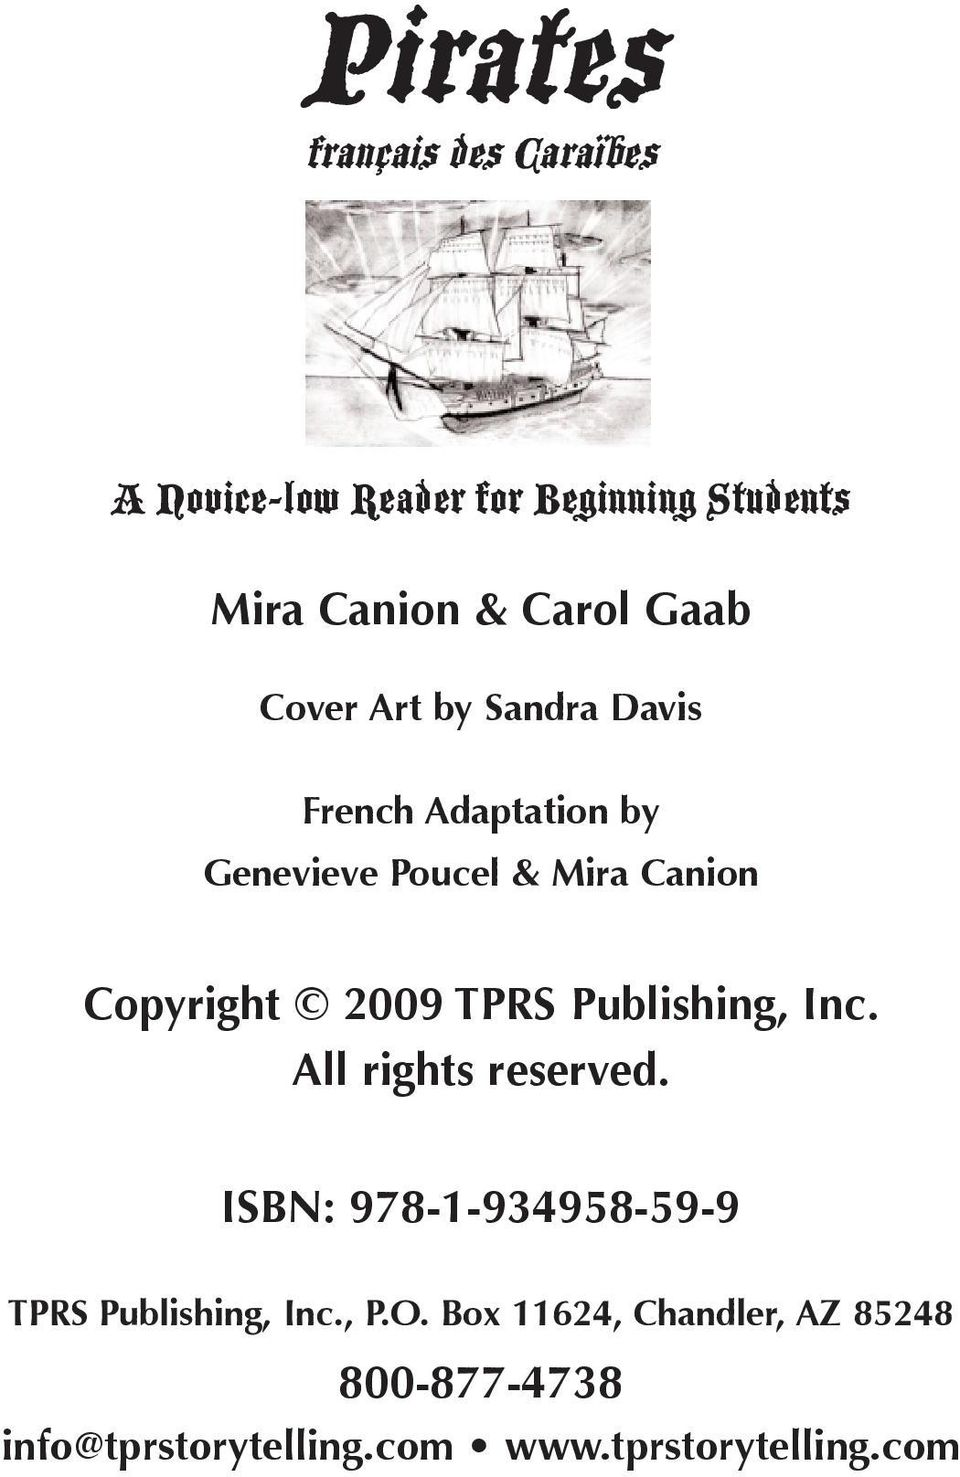 2009 TPRS Publishing, Inc. All rights reserved. ISBN: 978-1-934958-59-9 TPRS Publishing, Inc.